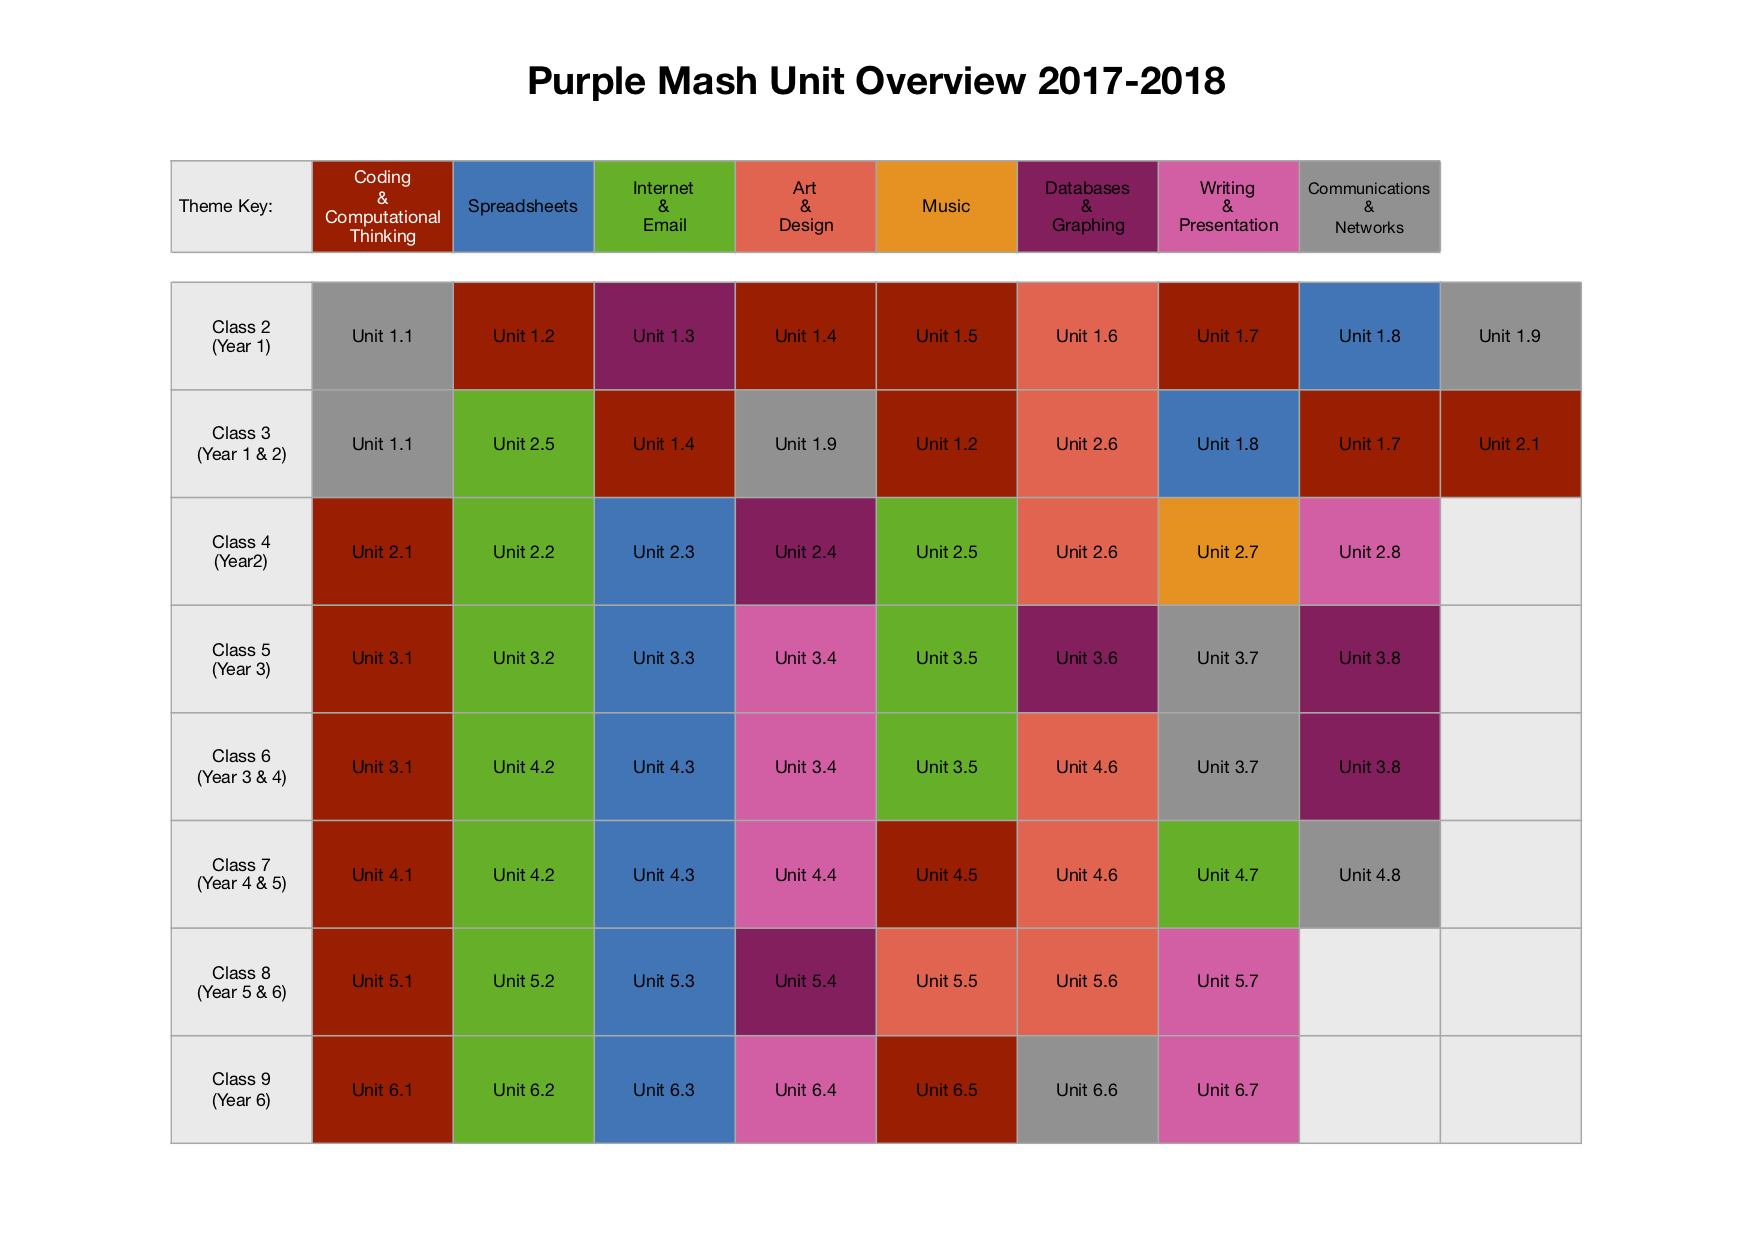 Purple Mash Unit Overview 2017-2018.jpg